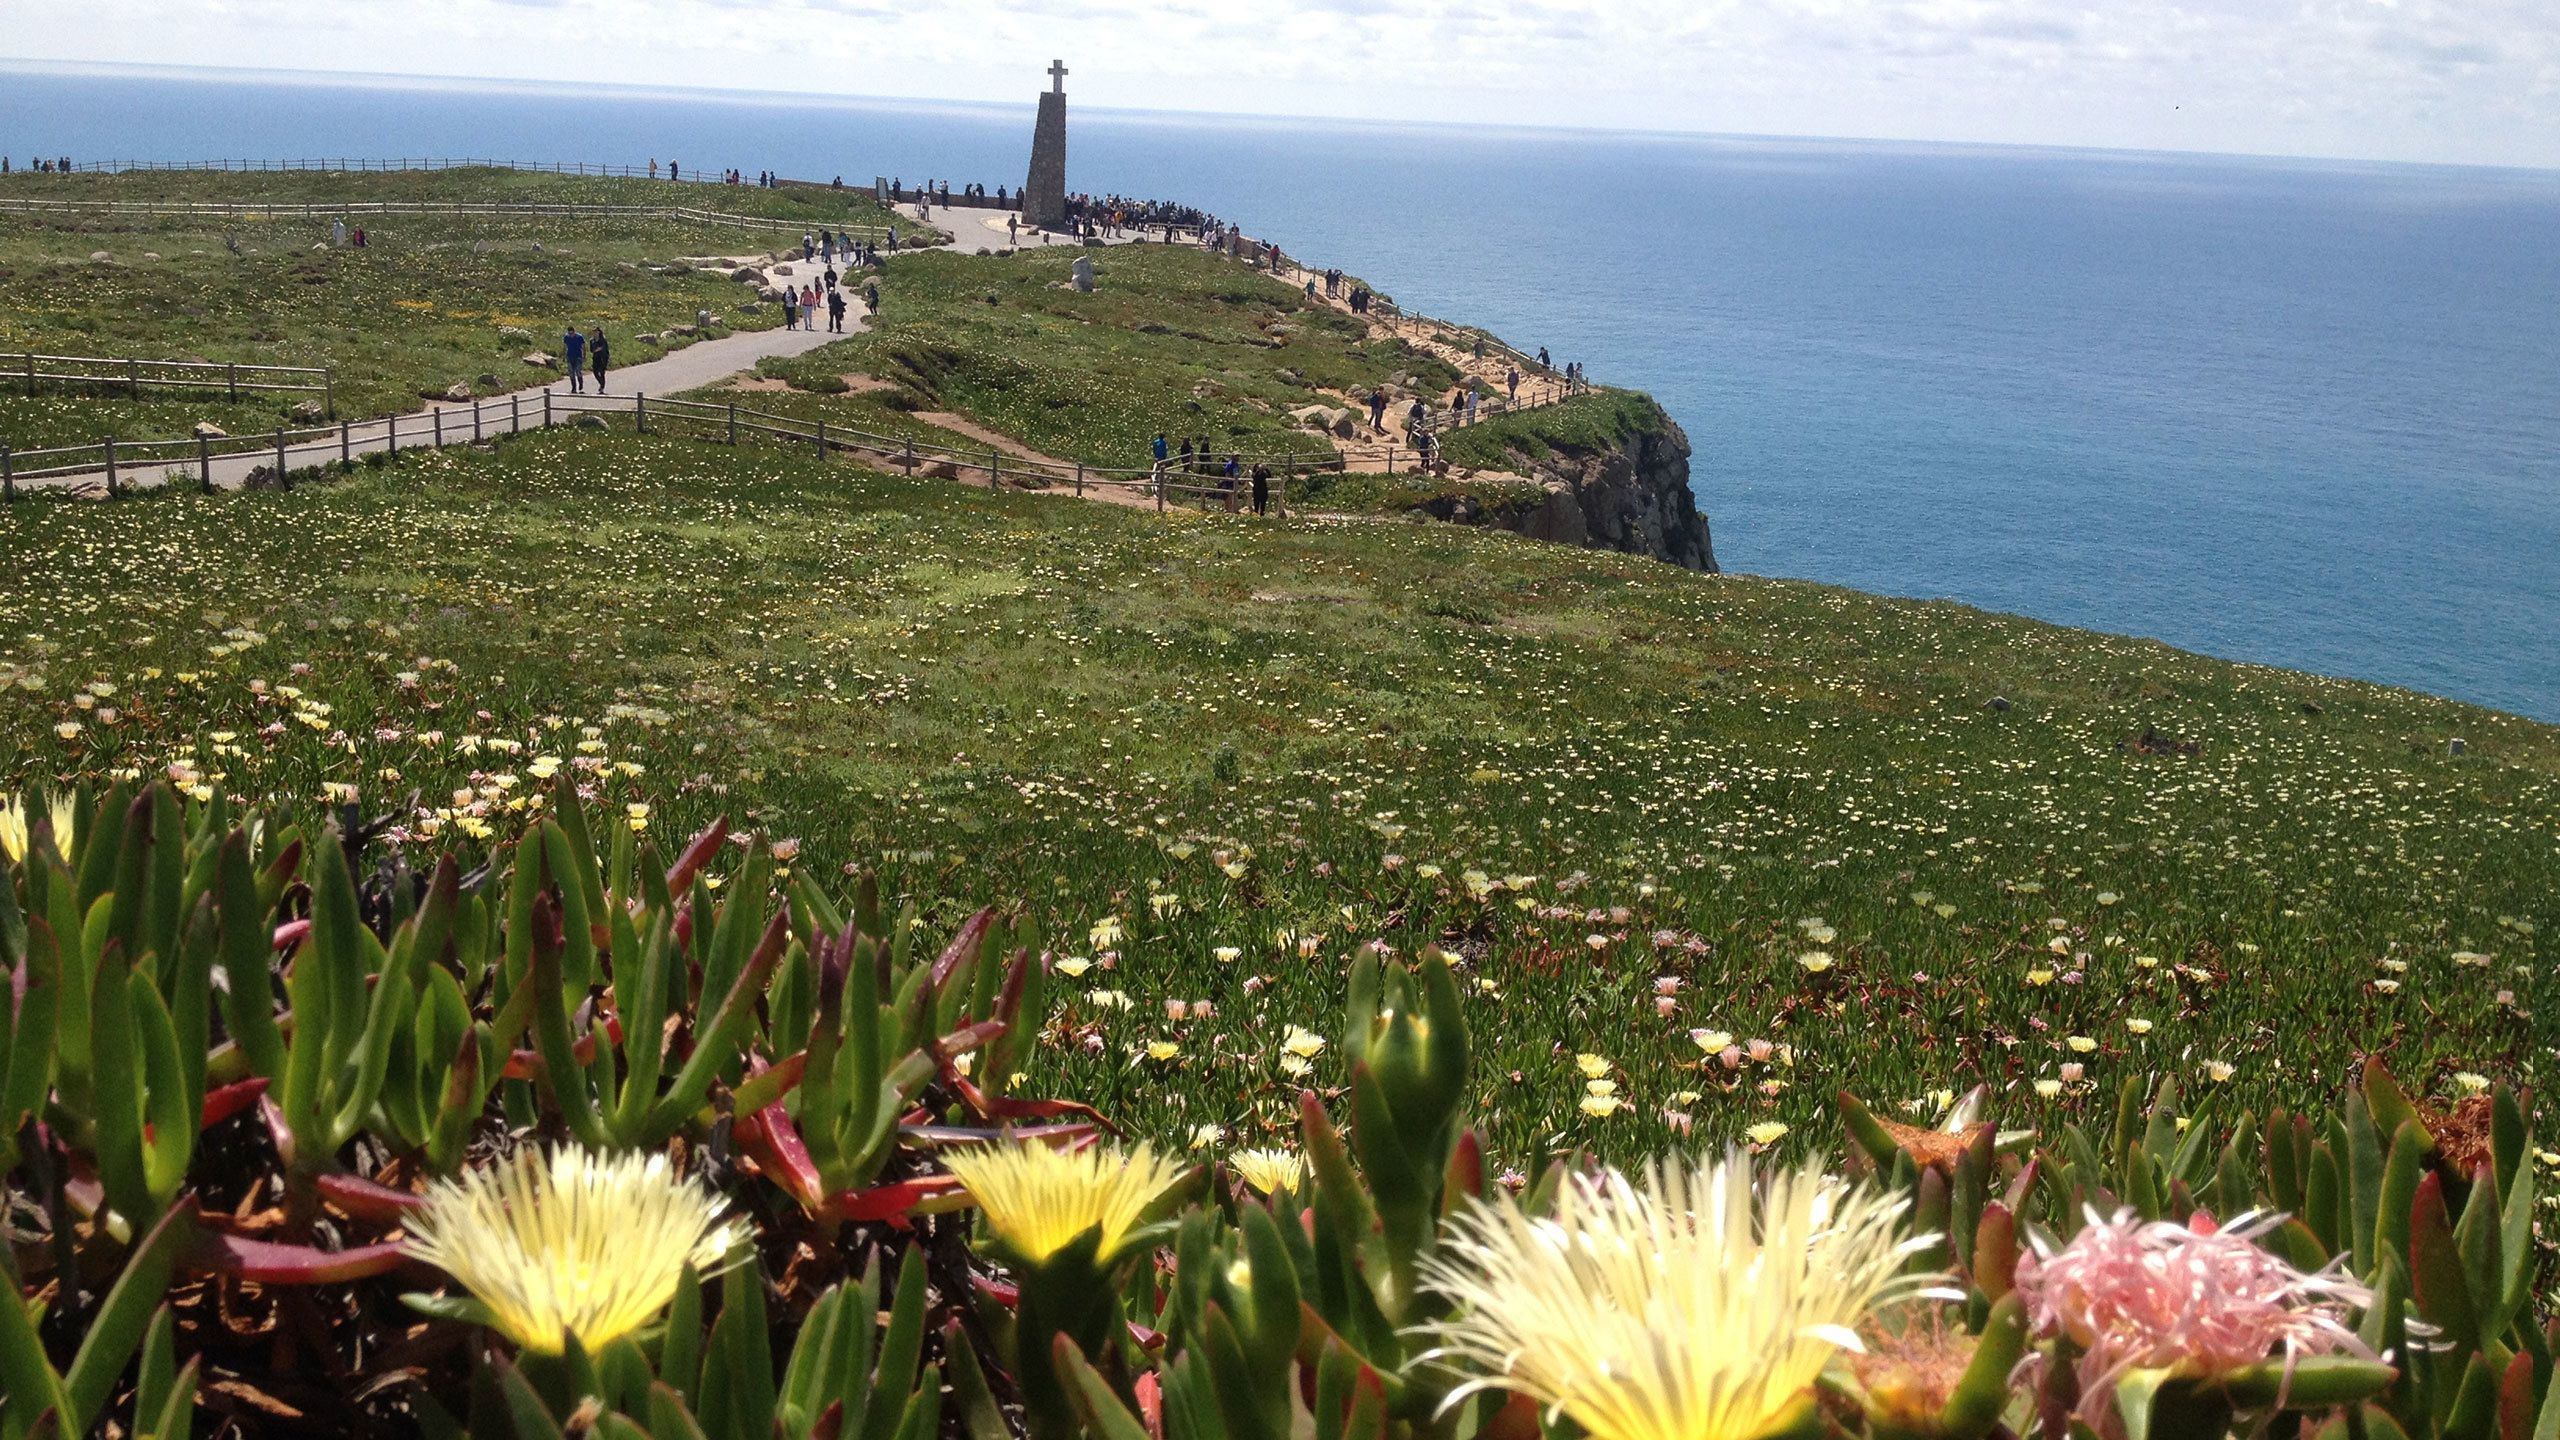 field of grass and flowers at the coastline cliff in Portugal